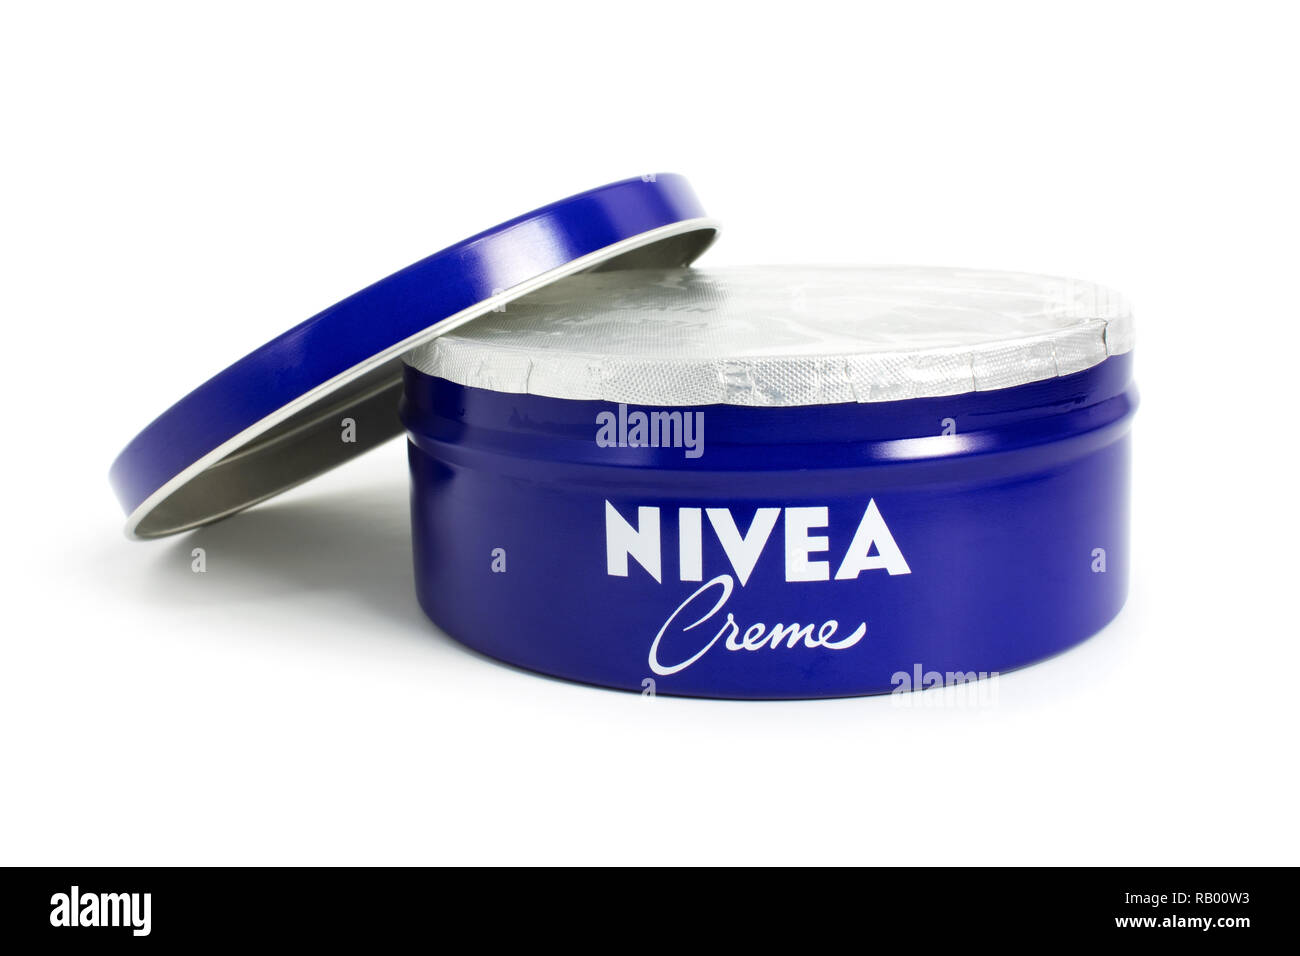 Prague, CZECH REPUBLIC - DECEMBER 30, 2018: Nivea Creme, the world's famous skin cream skin cream in a metal jar laid on white background - Stock Image